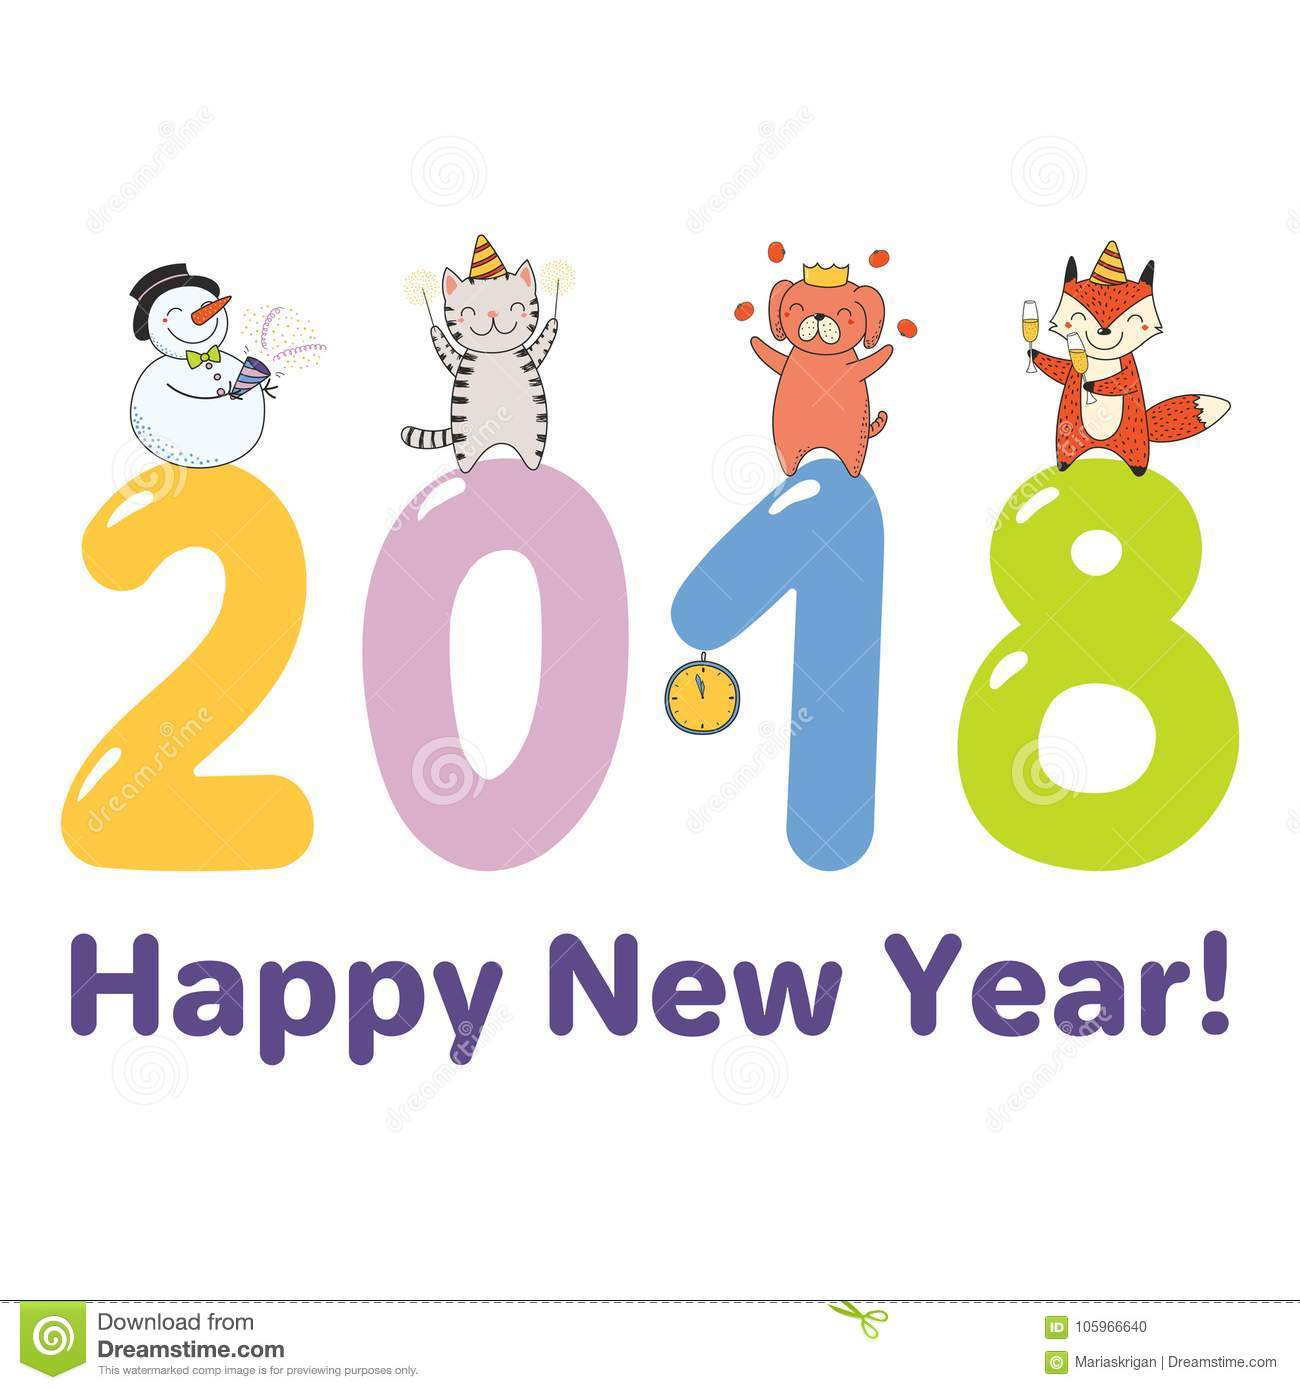 hand drawn happy new year 2018 greeting card banner template with cute funny cartoon animals celebratingstanding on big numbers text objects